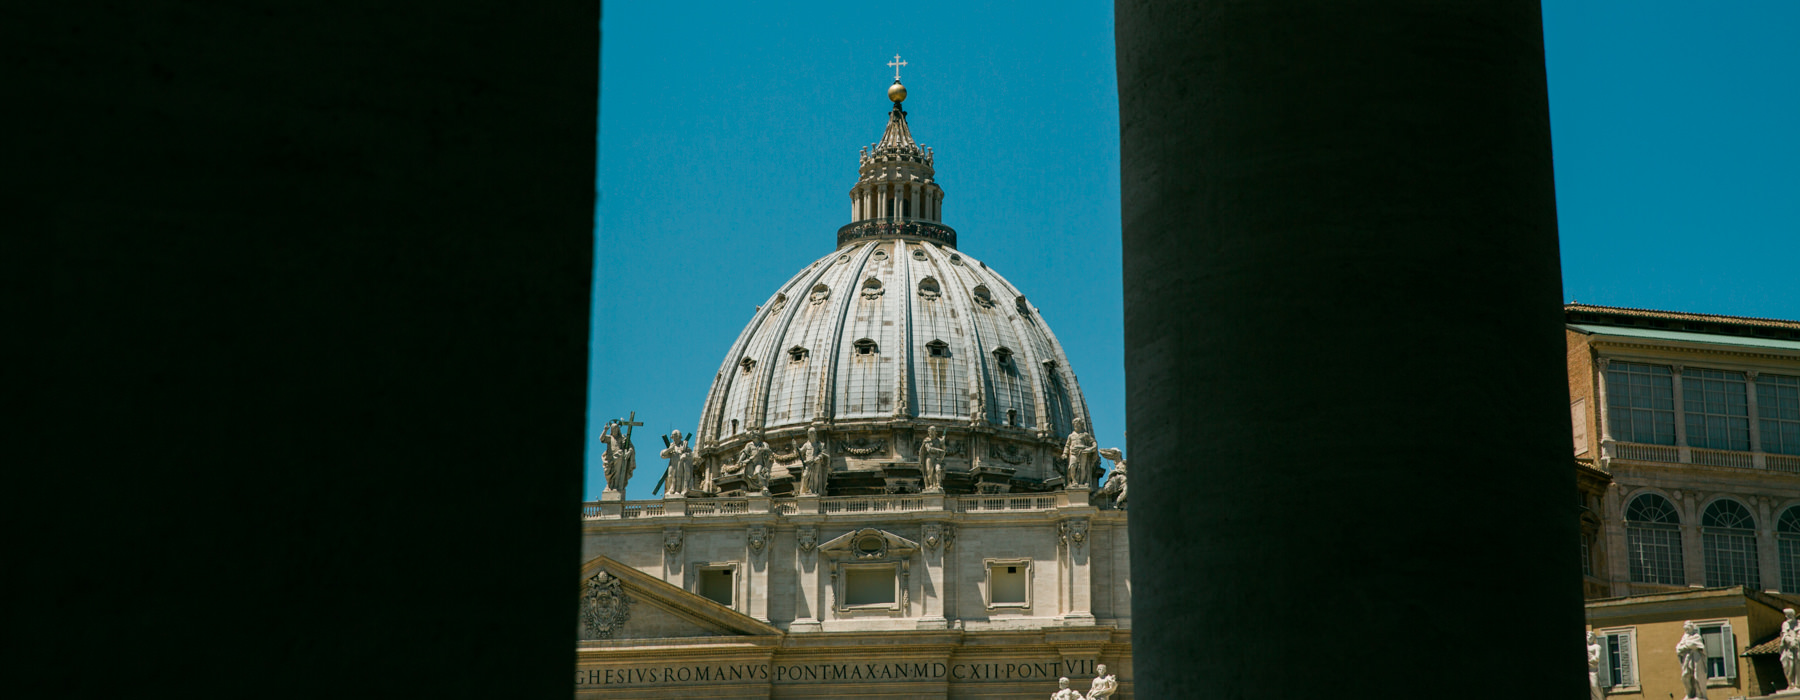 St Peter's Basilica by Cahill Photography